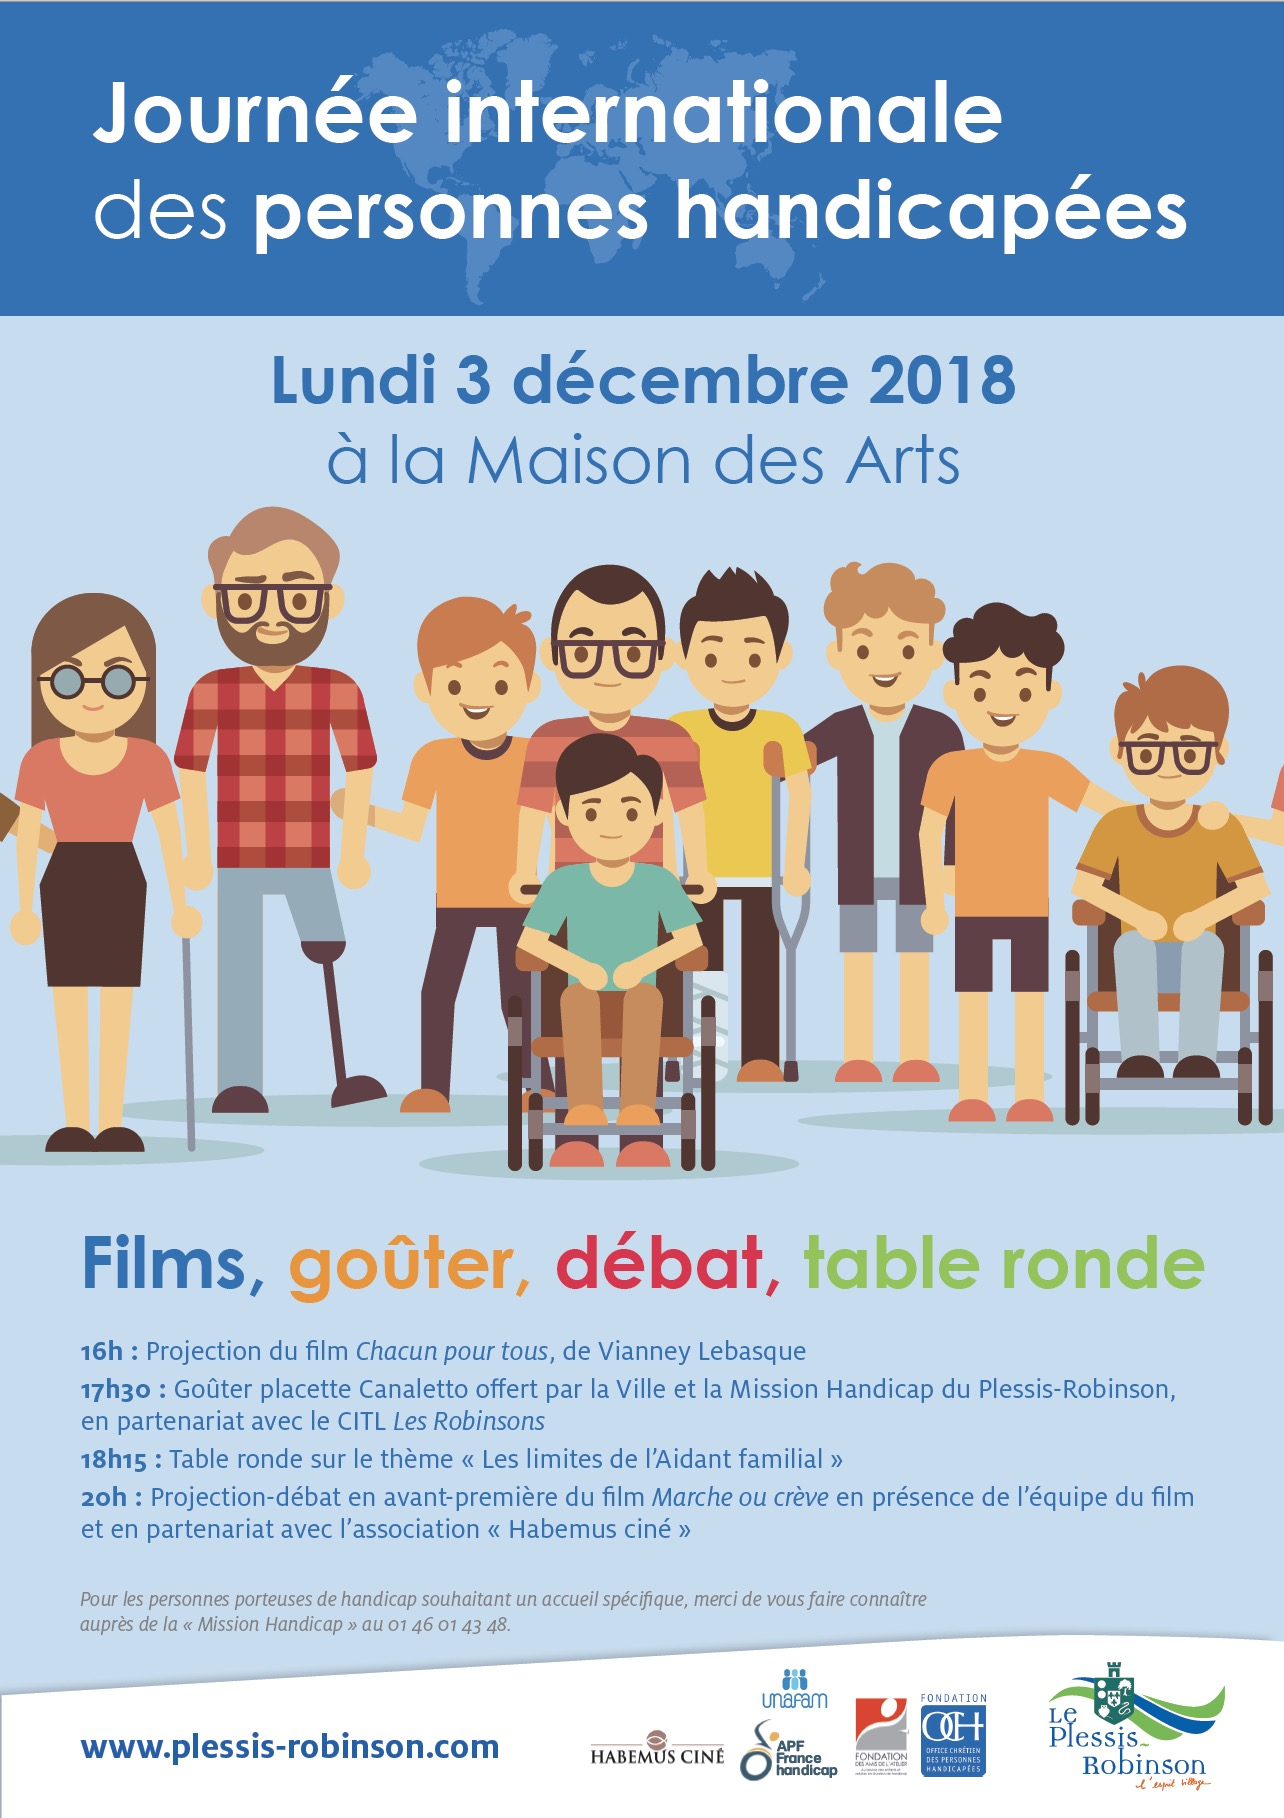 BAT JOURNEE INTERNATIONALE PERSONNES HANDICAPEES 2018